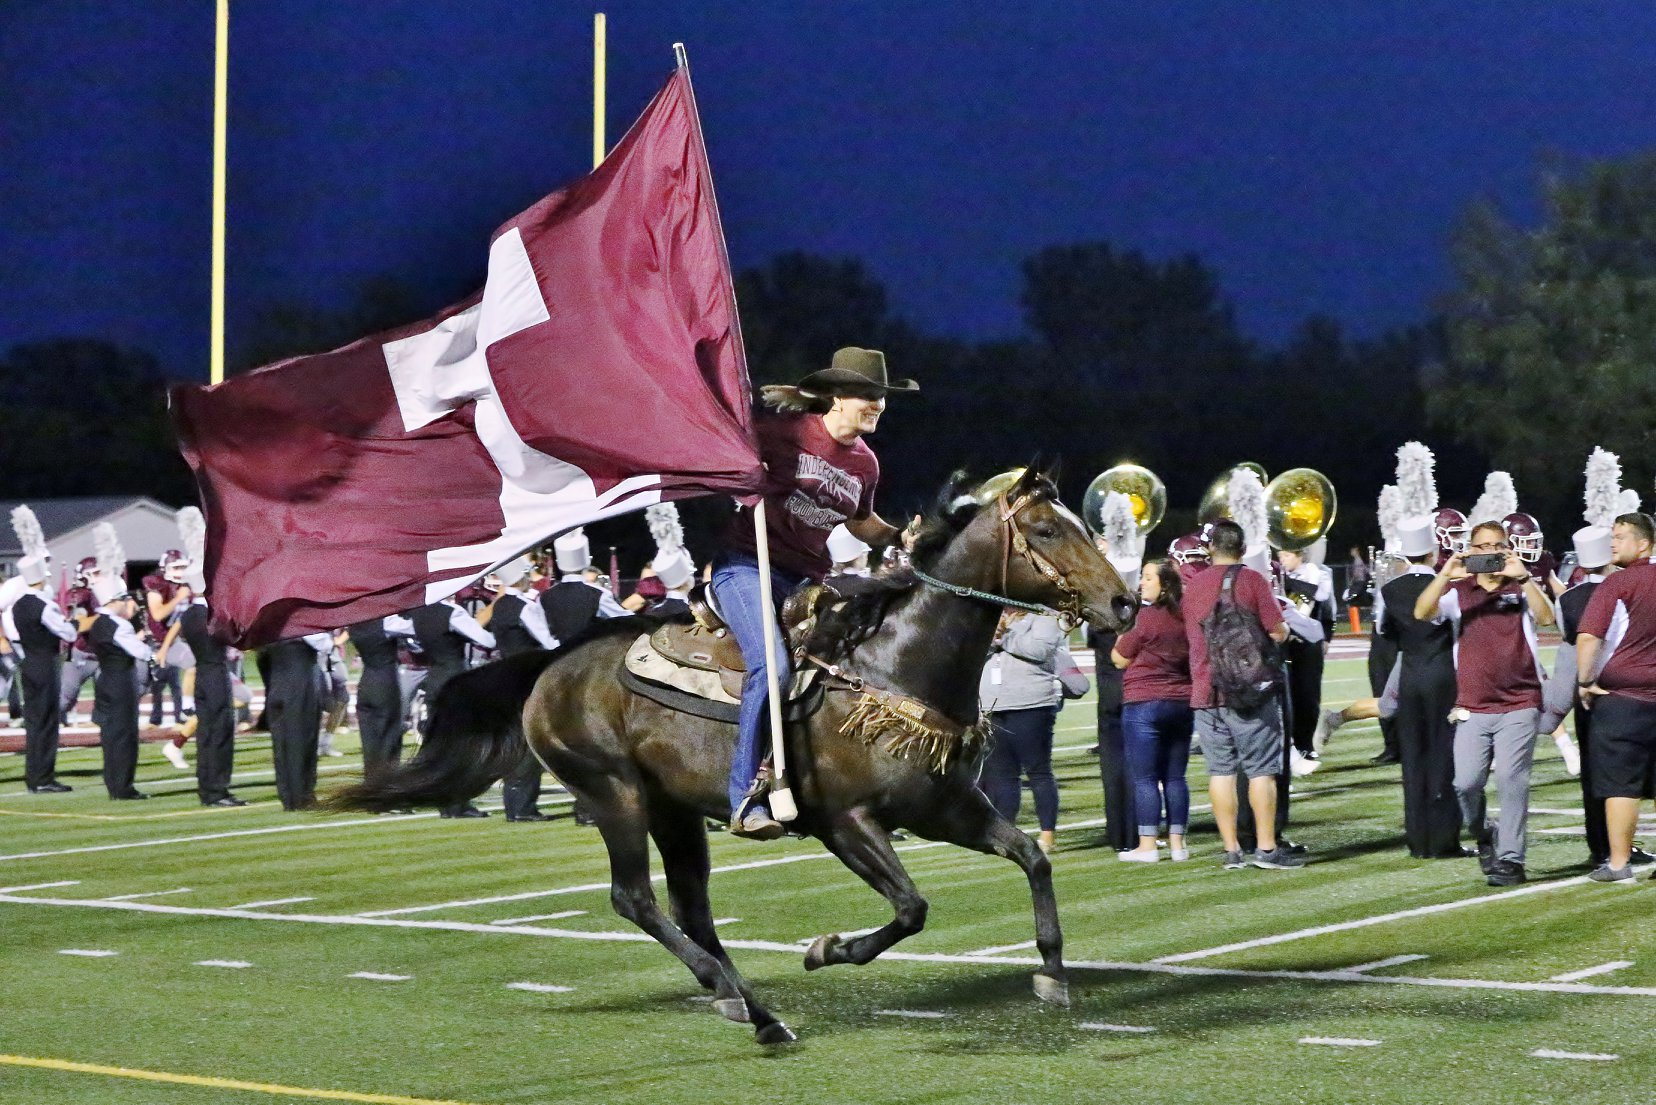 mustang enters the football field